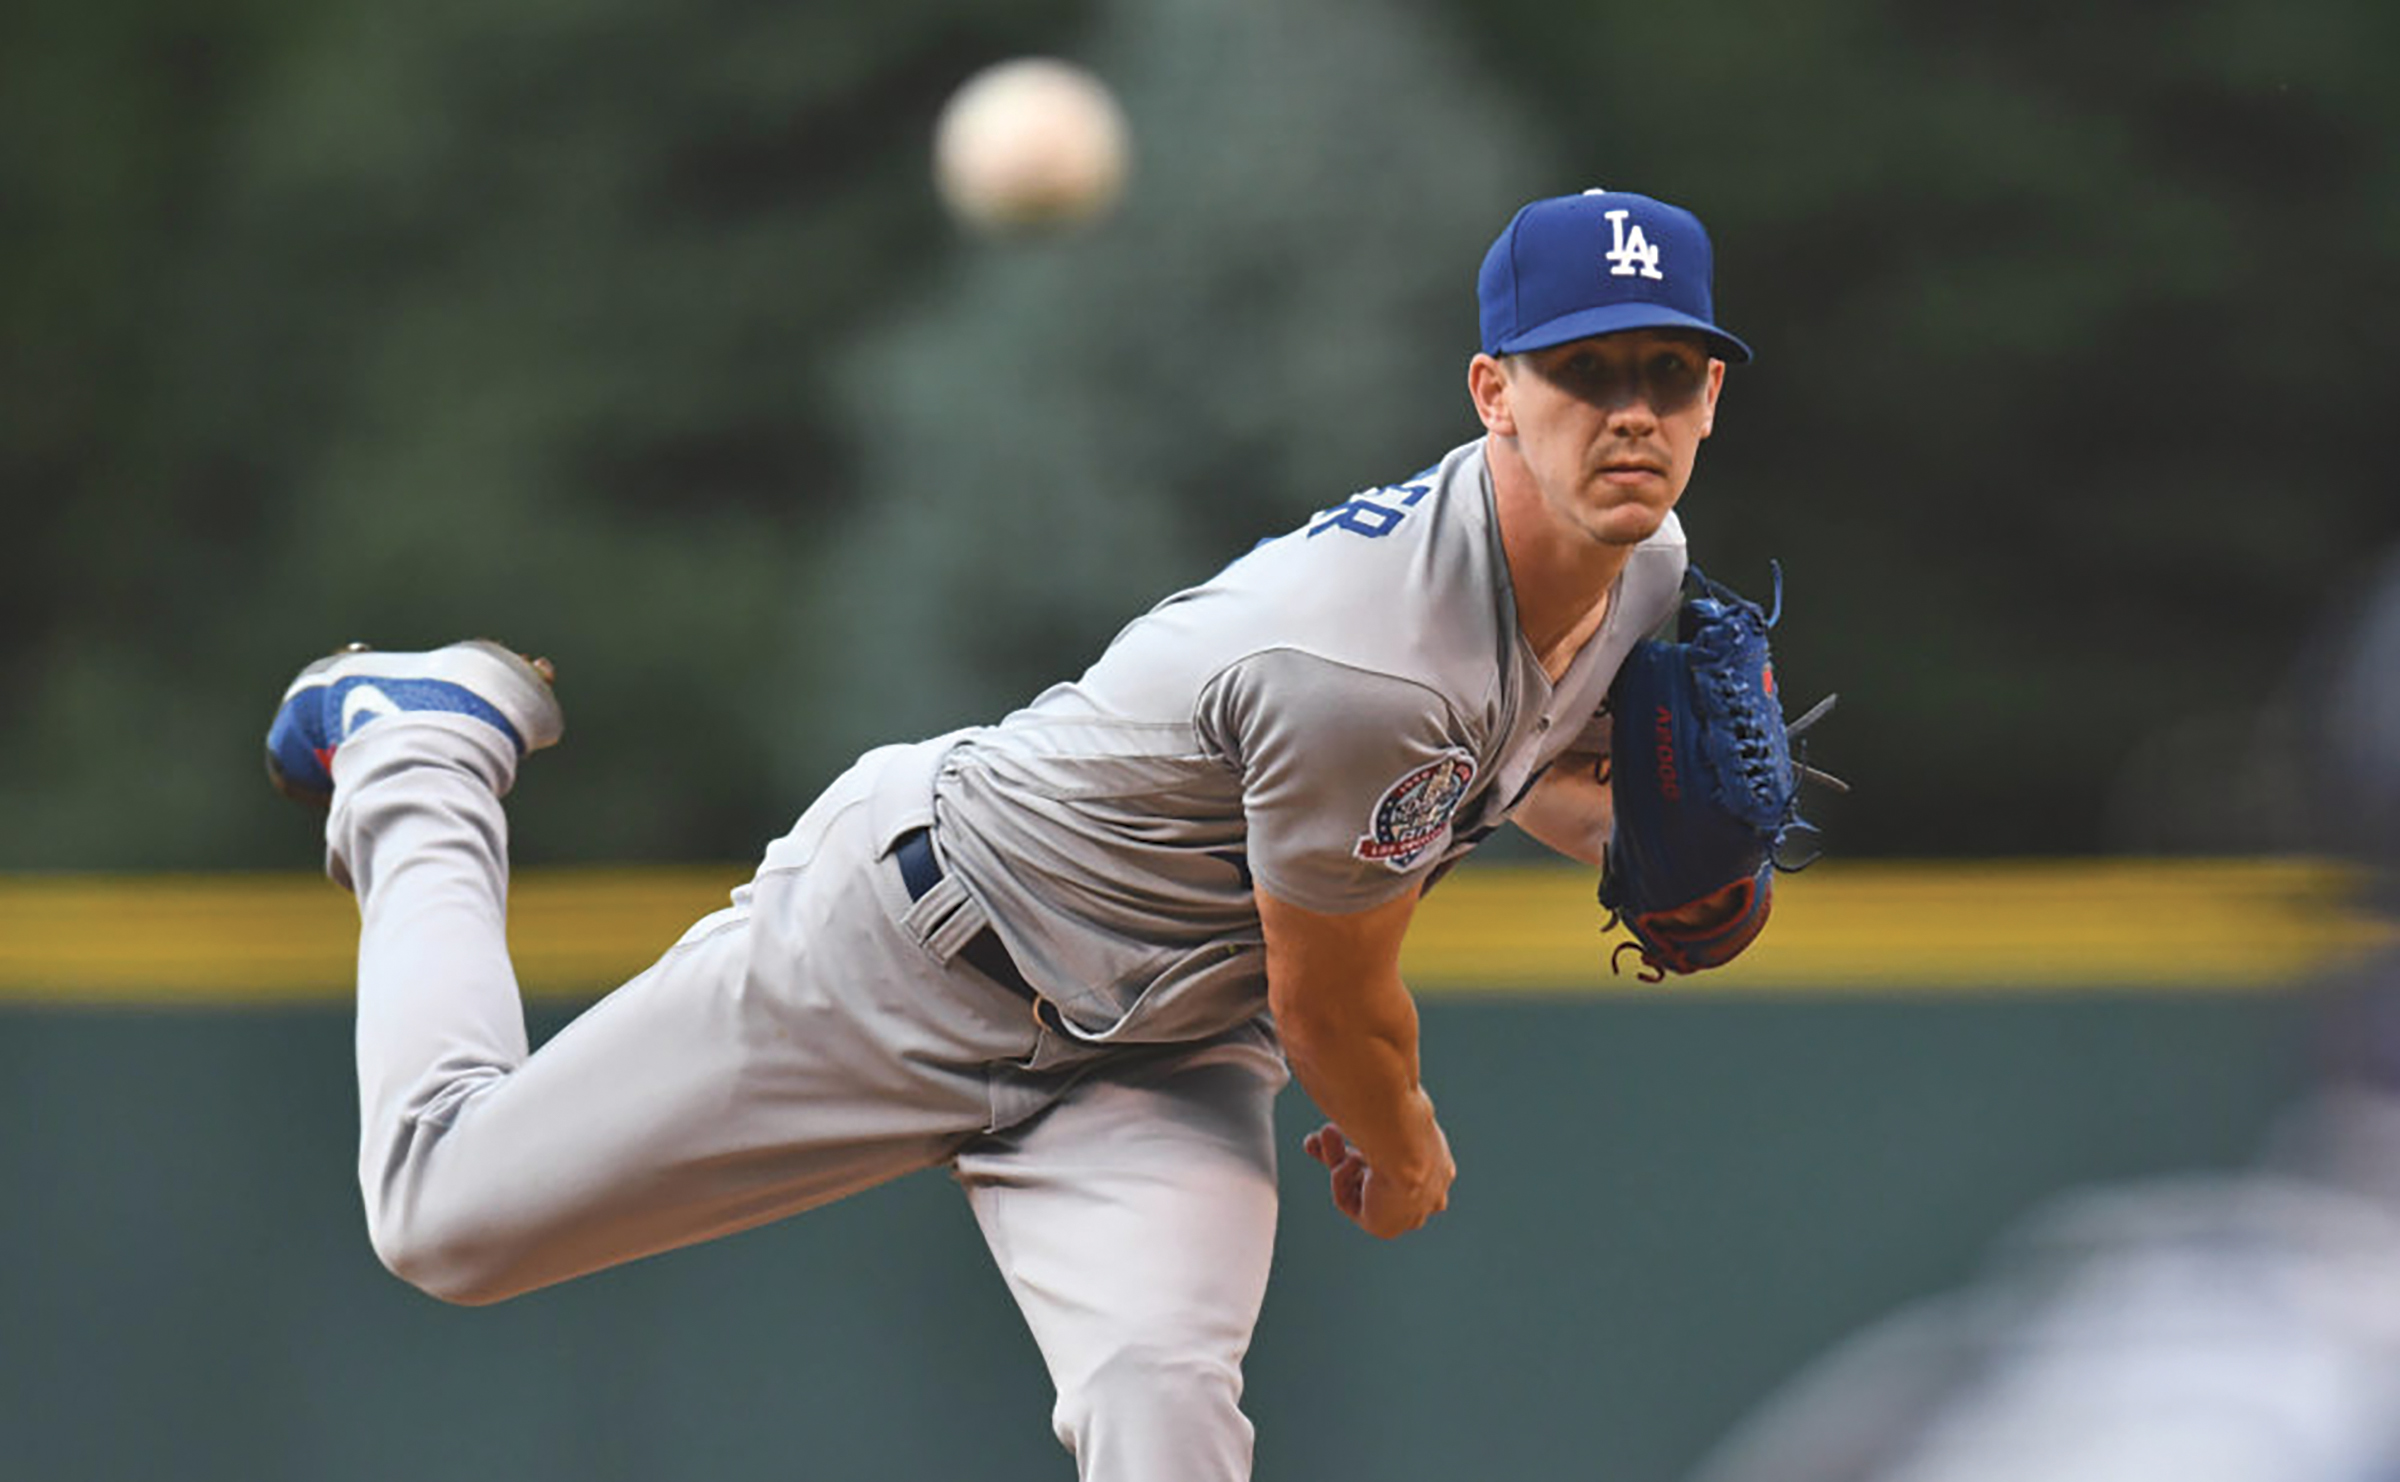 Los Angeles Dodgers starting pitcher Walker Buehler (21) delivers a pitch in the first inning against the Colorado Rockies at Coors Field. (Ron Chenoy-USA TODAY Sports)